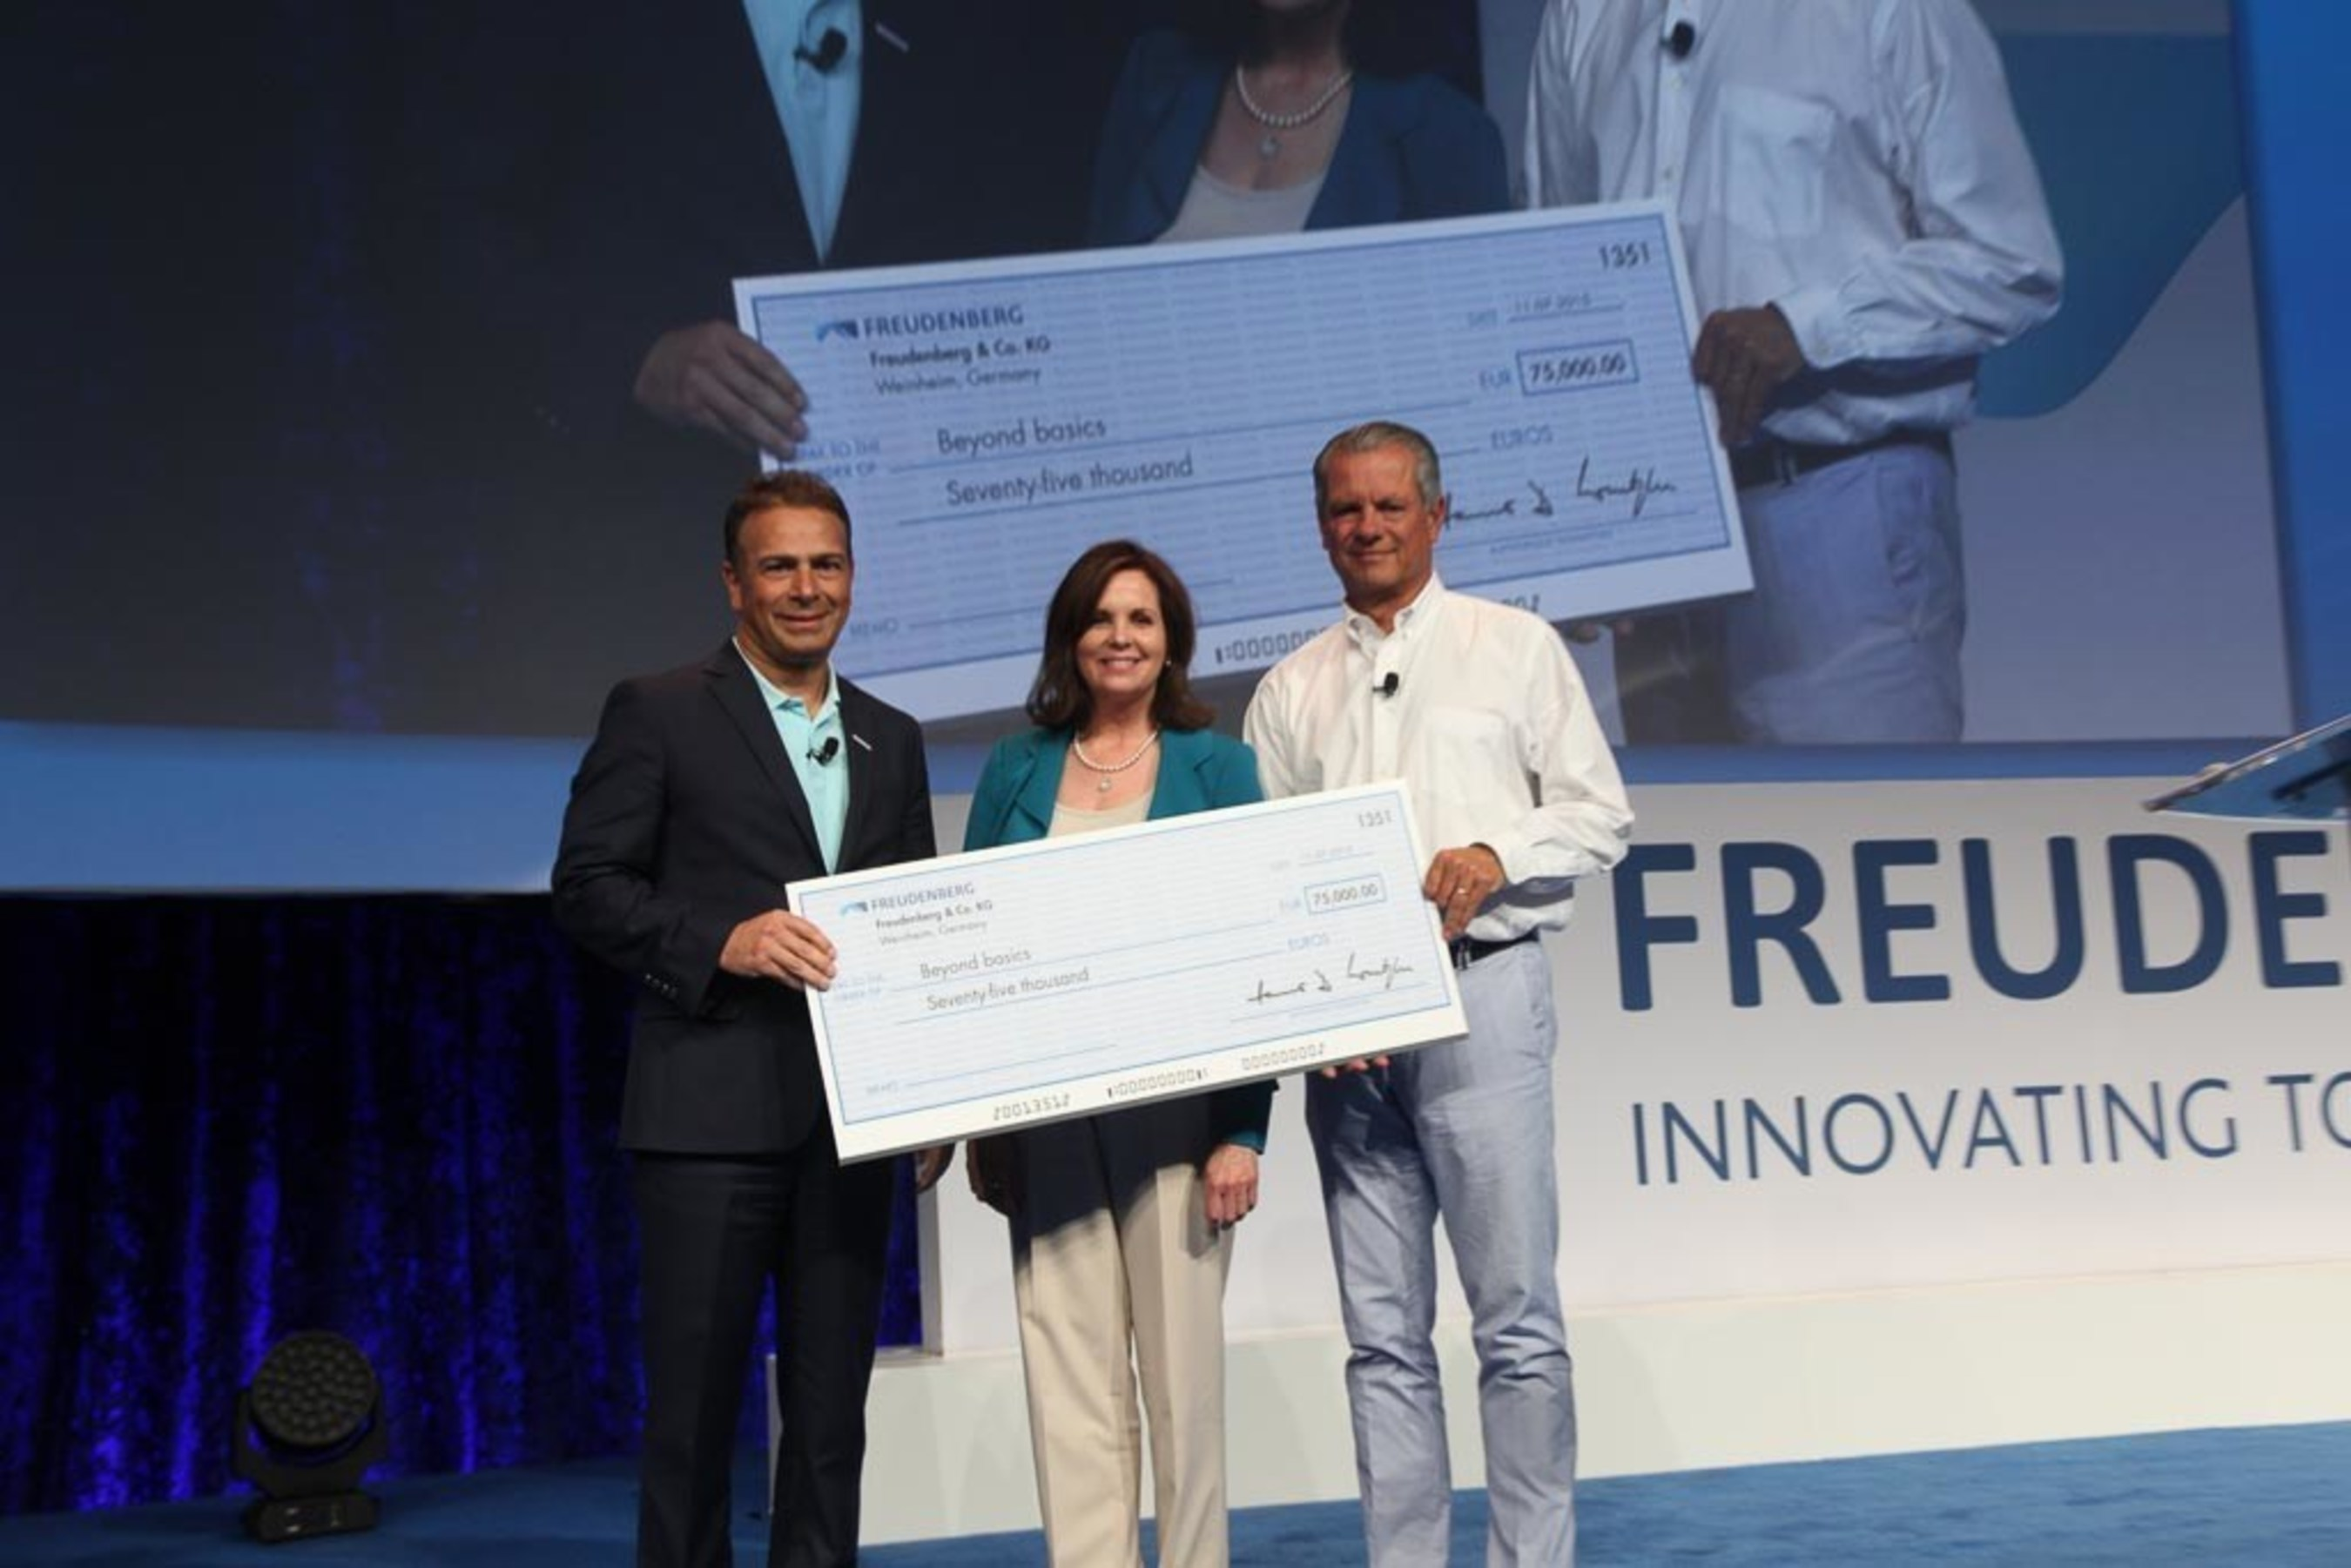 Pamela Good, president and executive director of Beyond Basics with Dr. Mohsen Sohi, CEO and Hanno D. Wentzler, member of the Executive Council of the Freudenberg Group